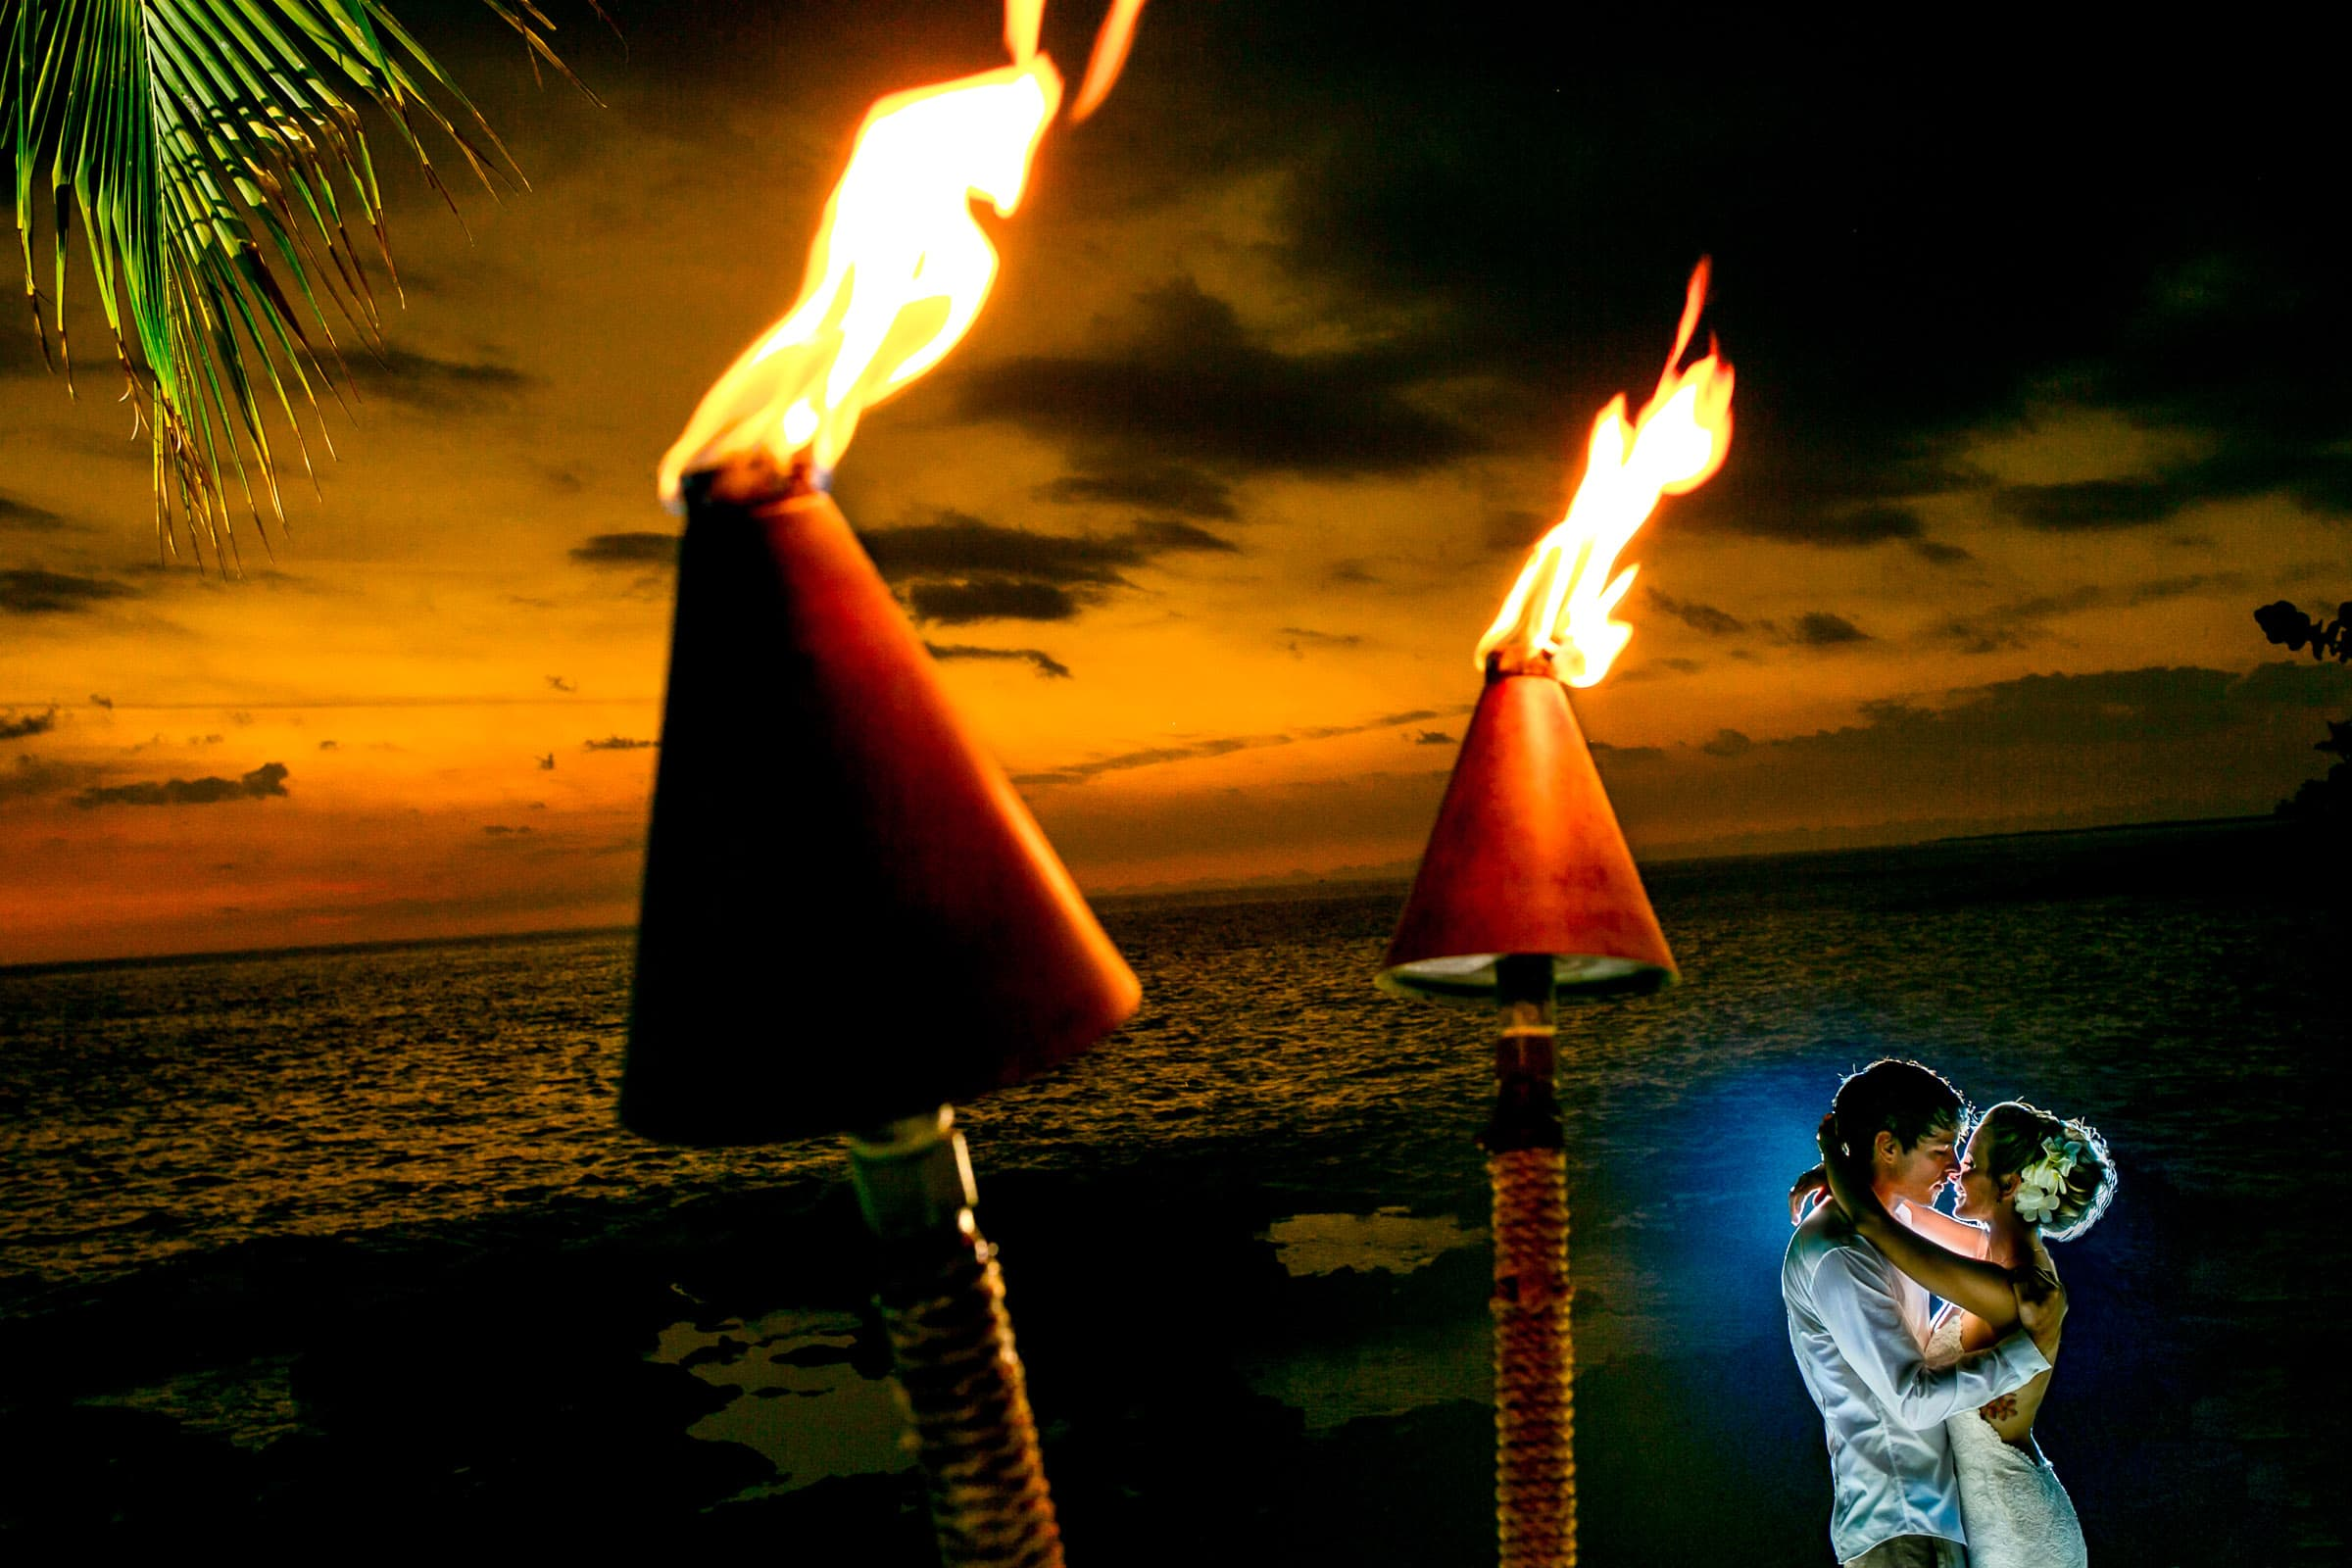 Bride and Groom at sunset with tiki torches during their Kailua Kona Wedding at the Kona Beach Bungalows on the Big Island of Hawaii